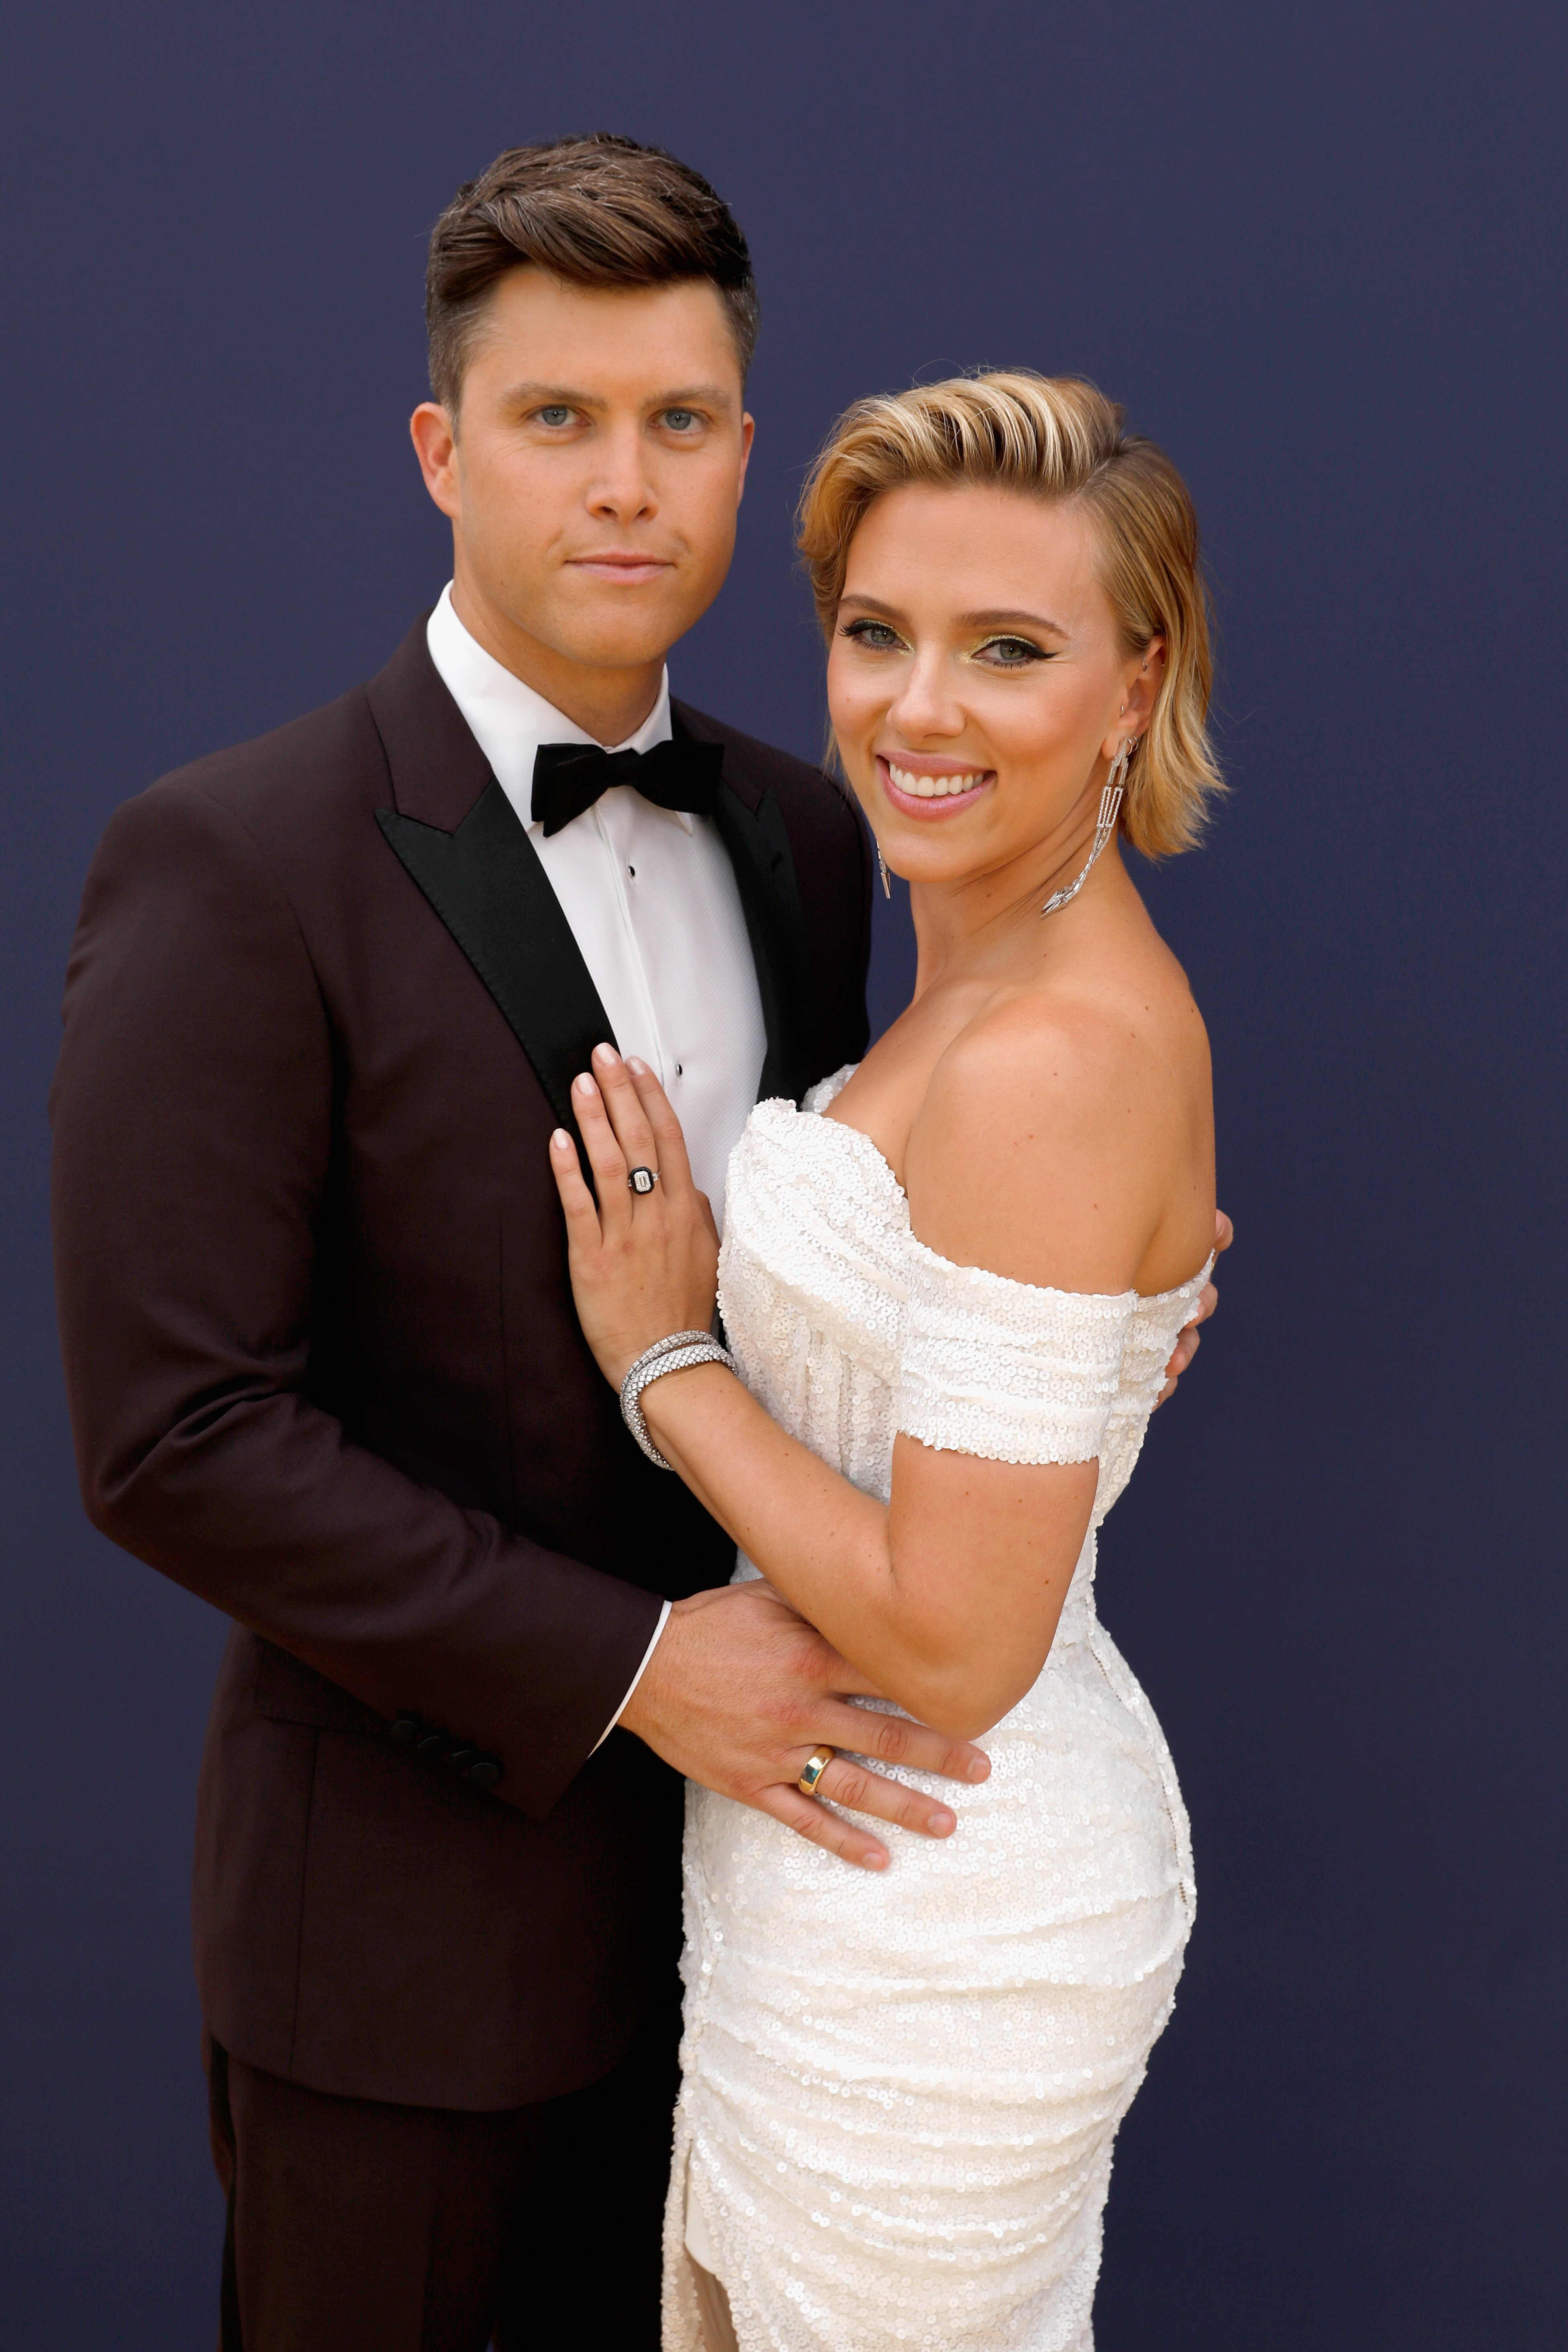 Colin Jost and Scarlett Johansson pose at the 70th Annual Primetime Emmy Awards red carpet on September 17, 2018. | Source: Getty Images